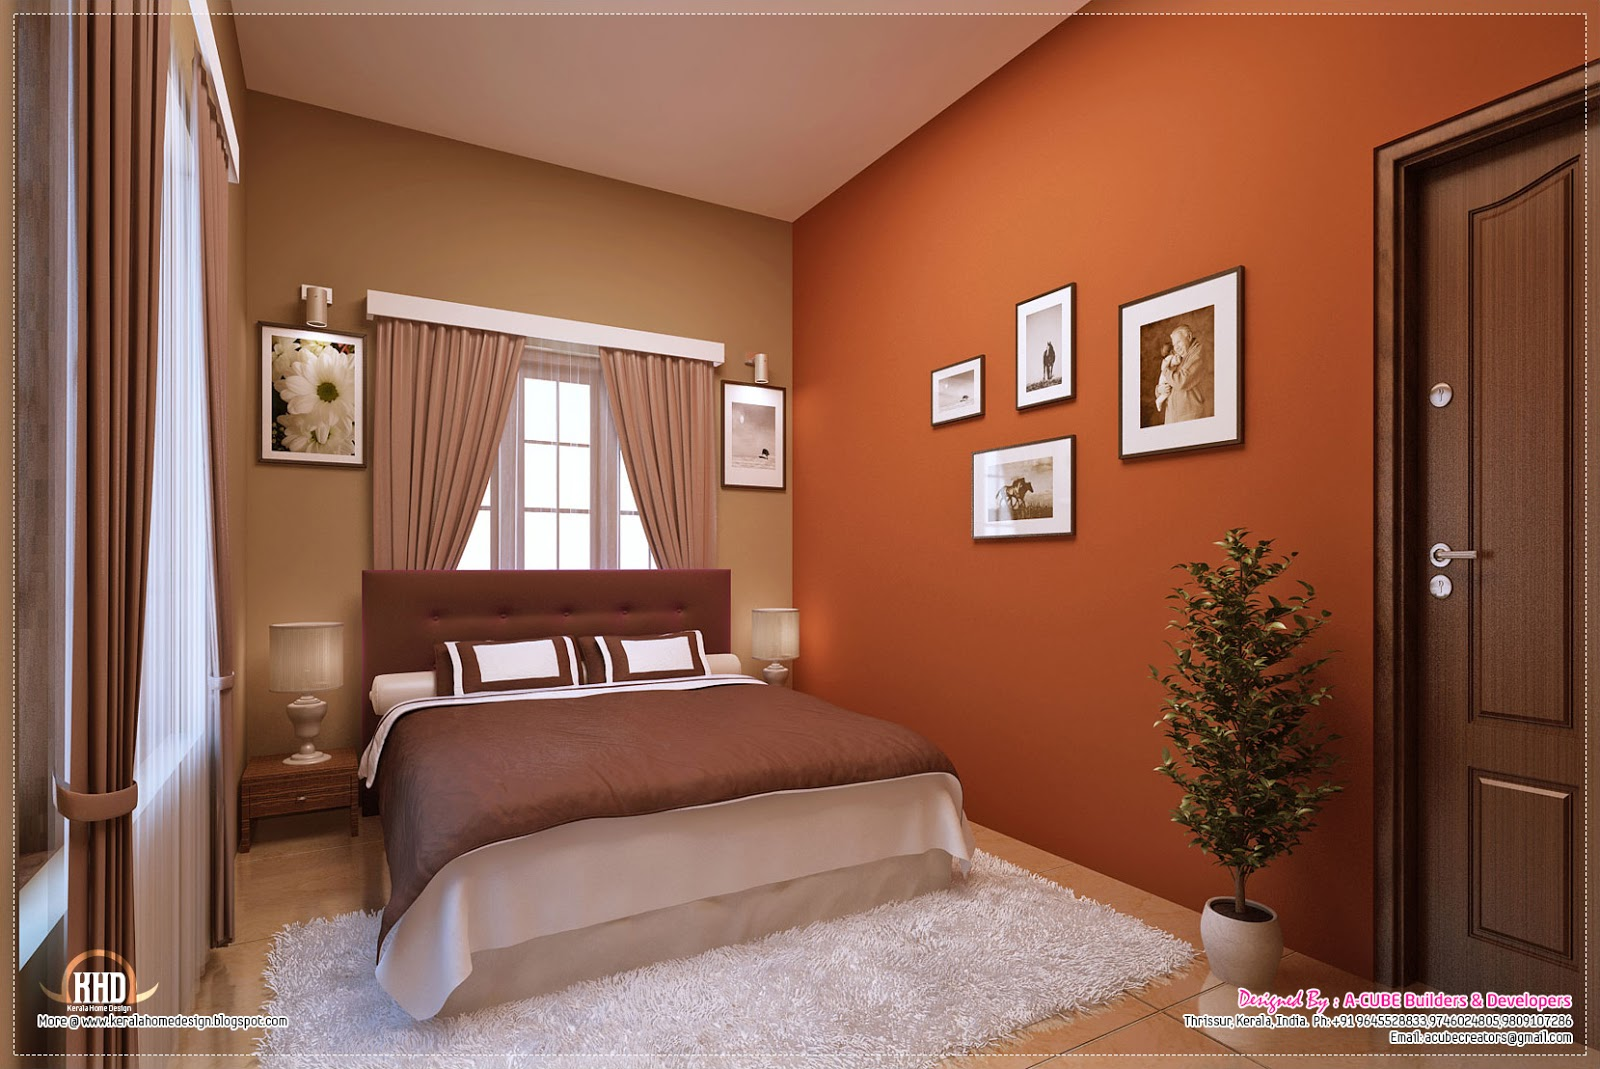 Awesome interior decoration ideas kerala home design and for Bedroom interior pictures